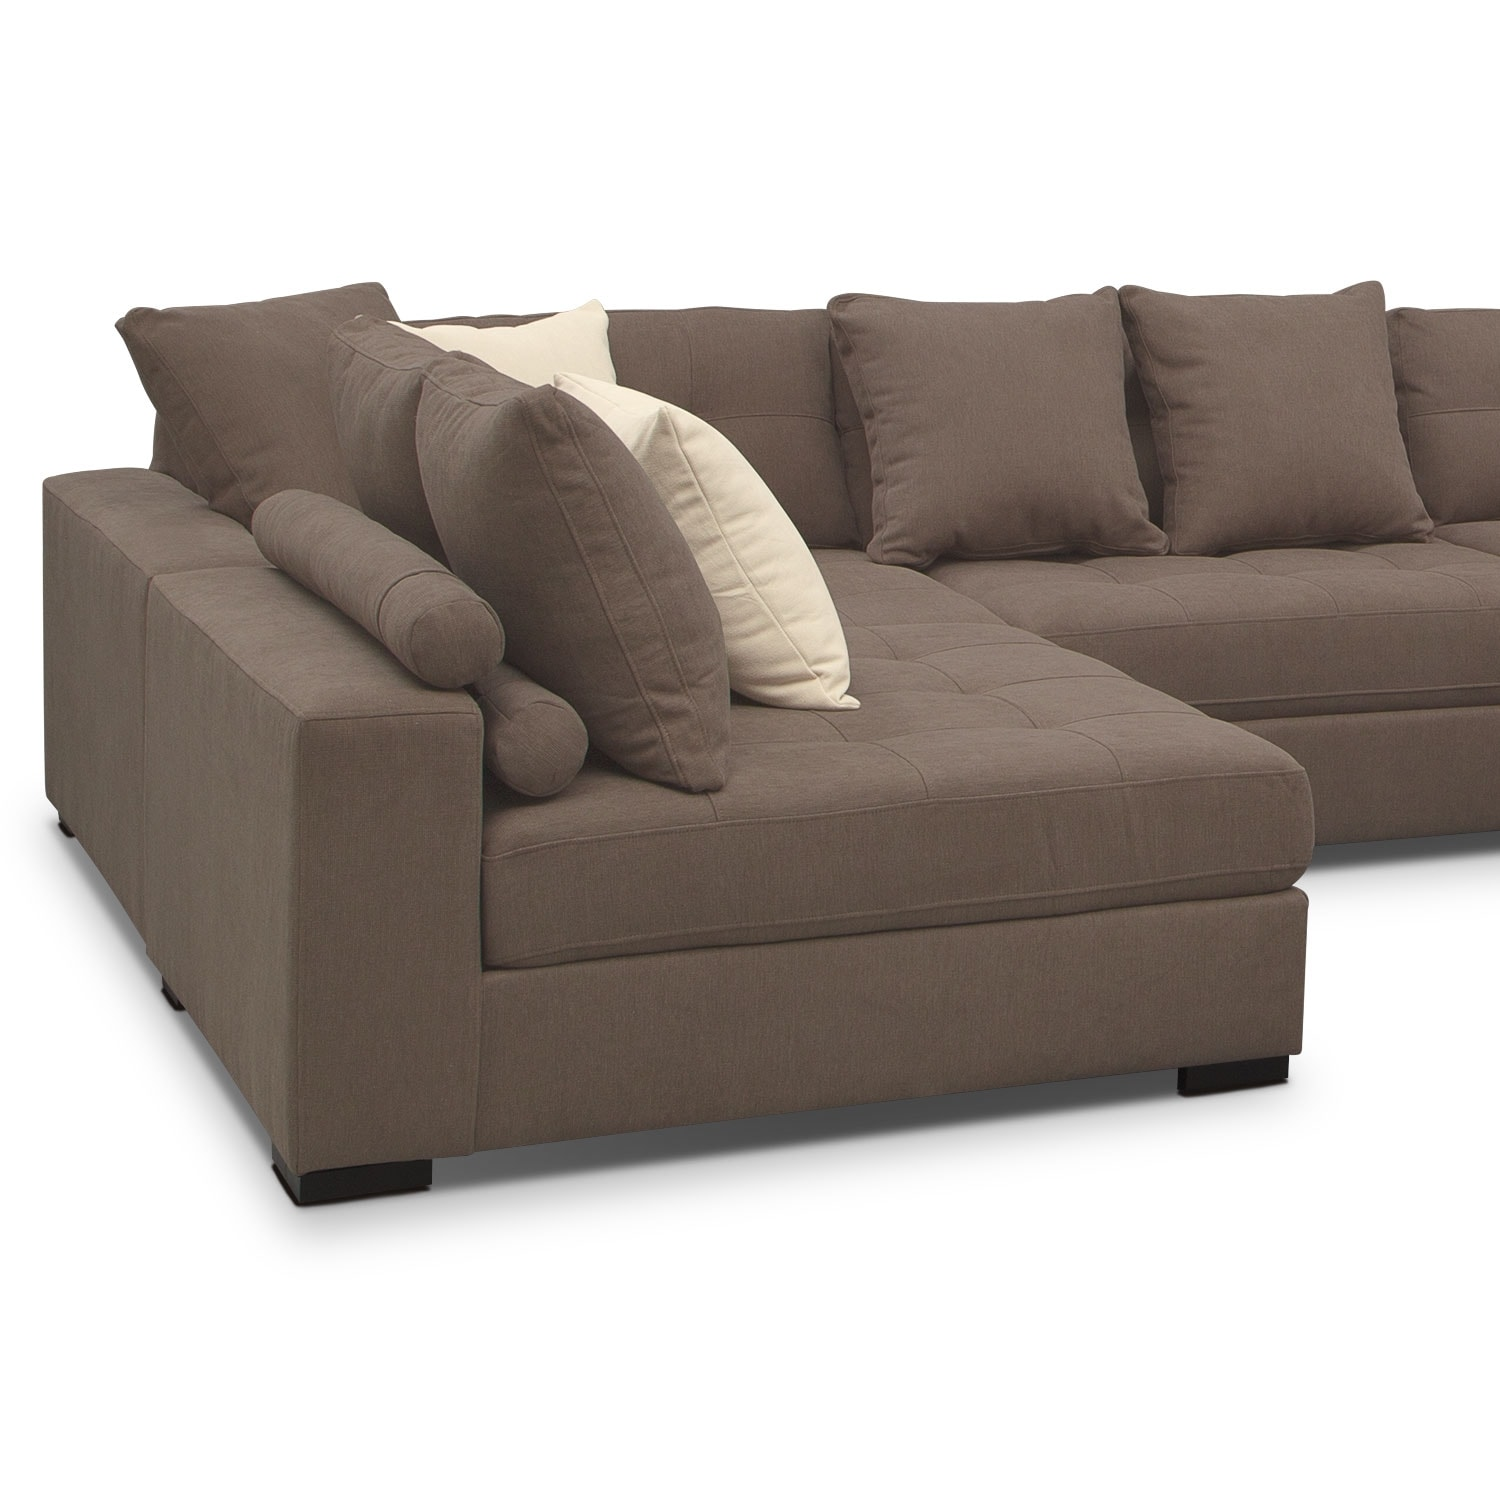 Kroehler Sofa Reviews